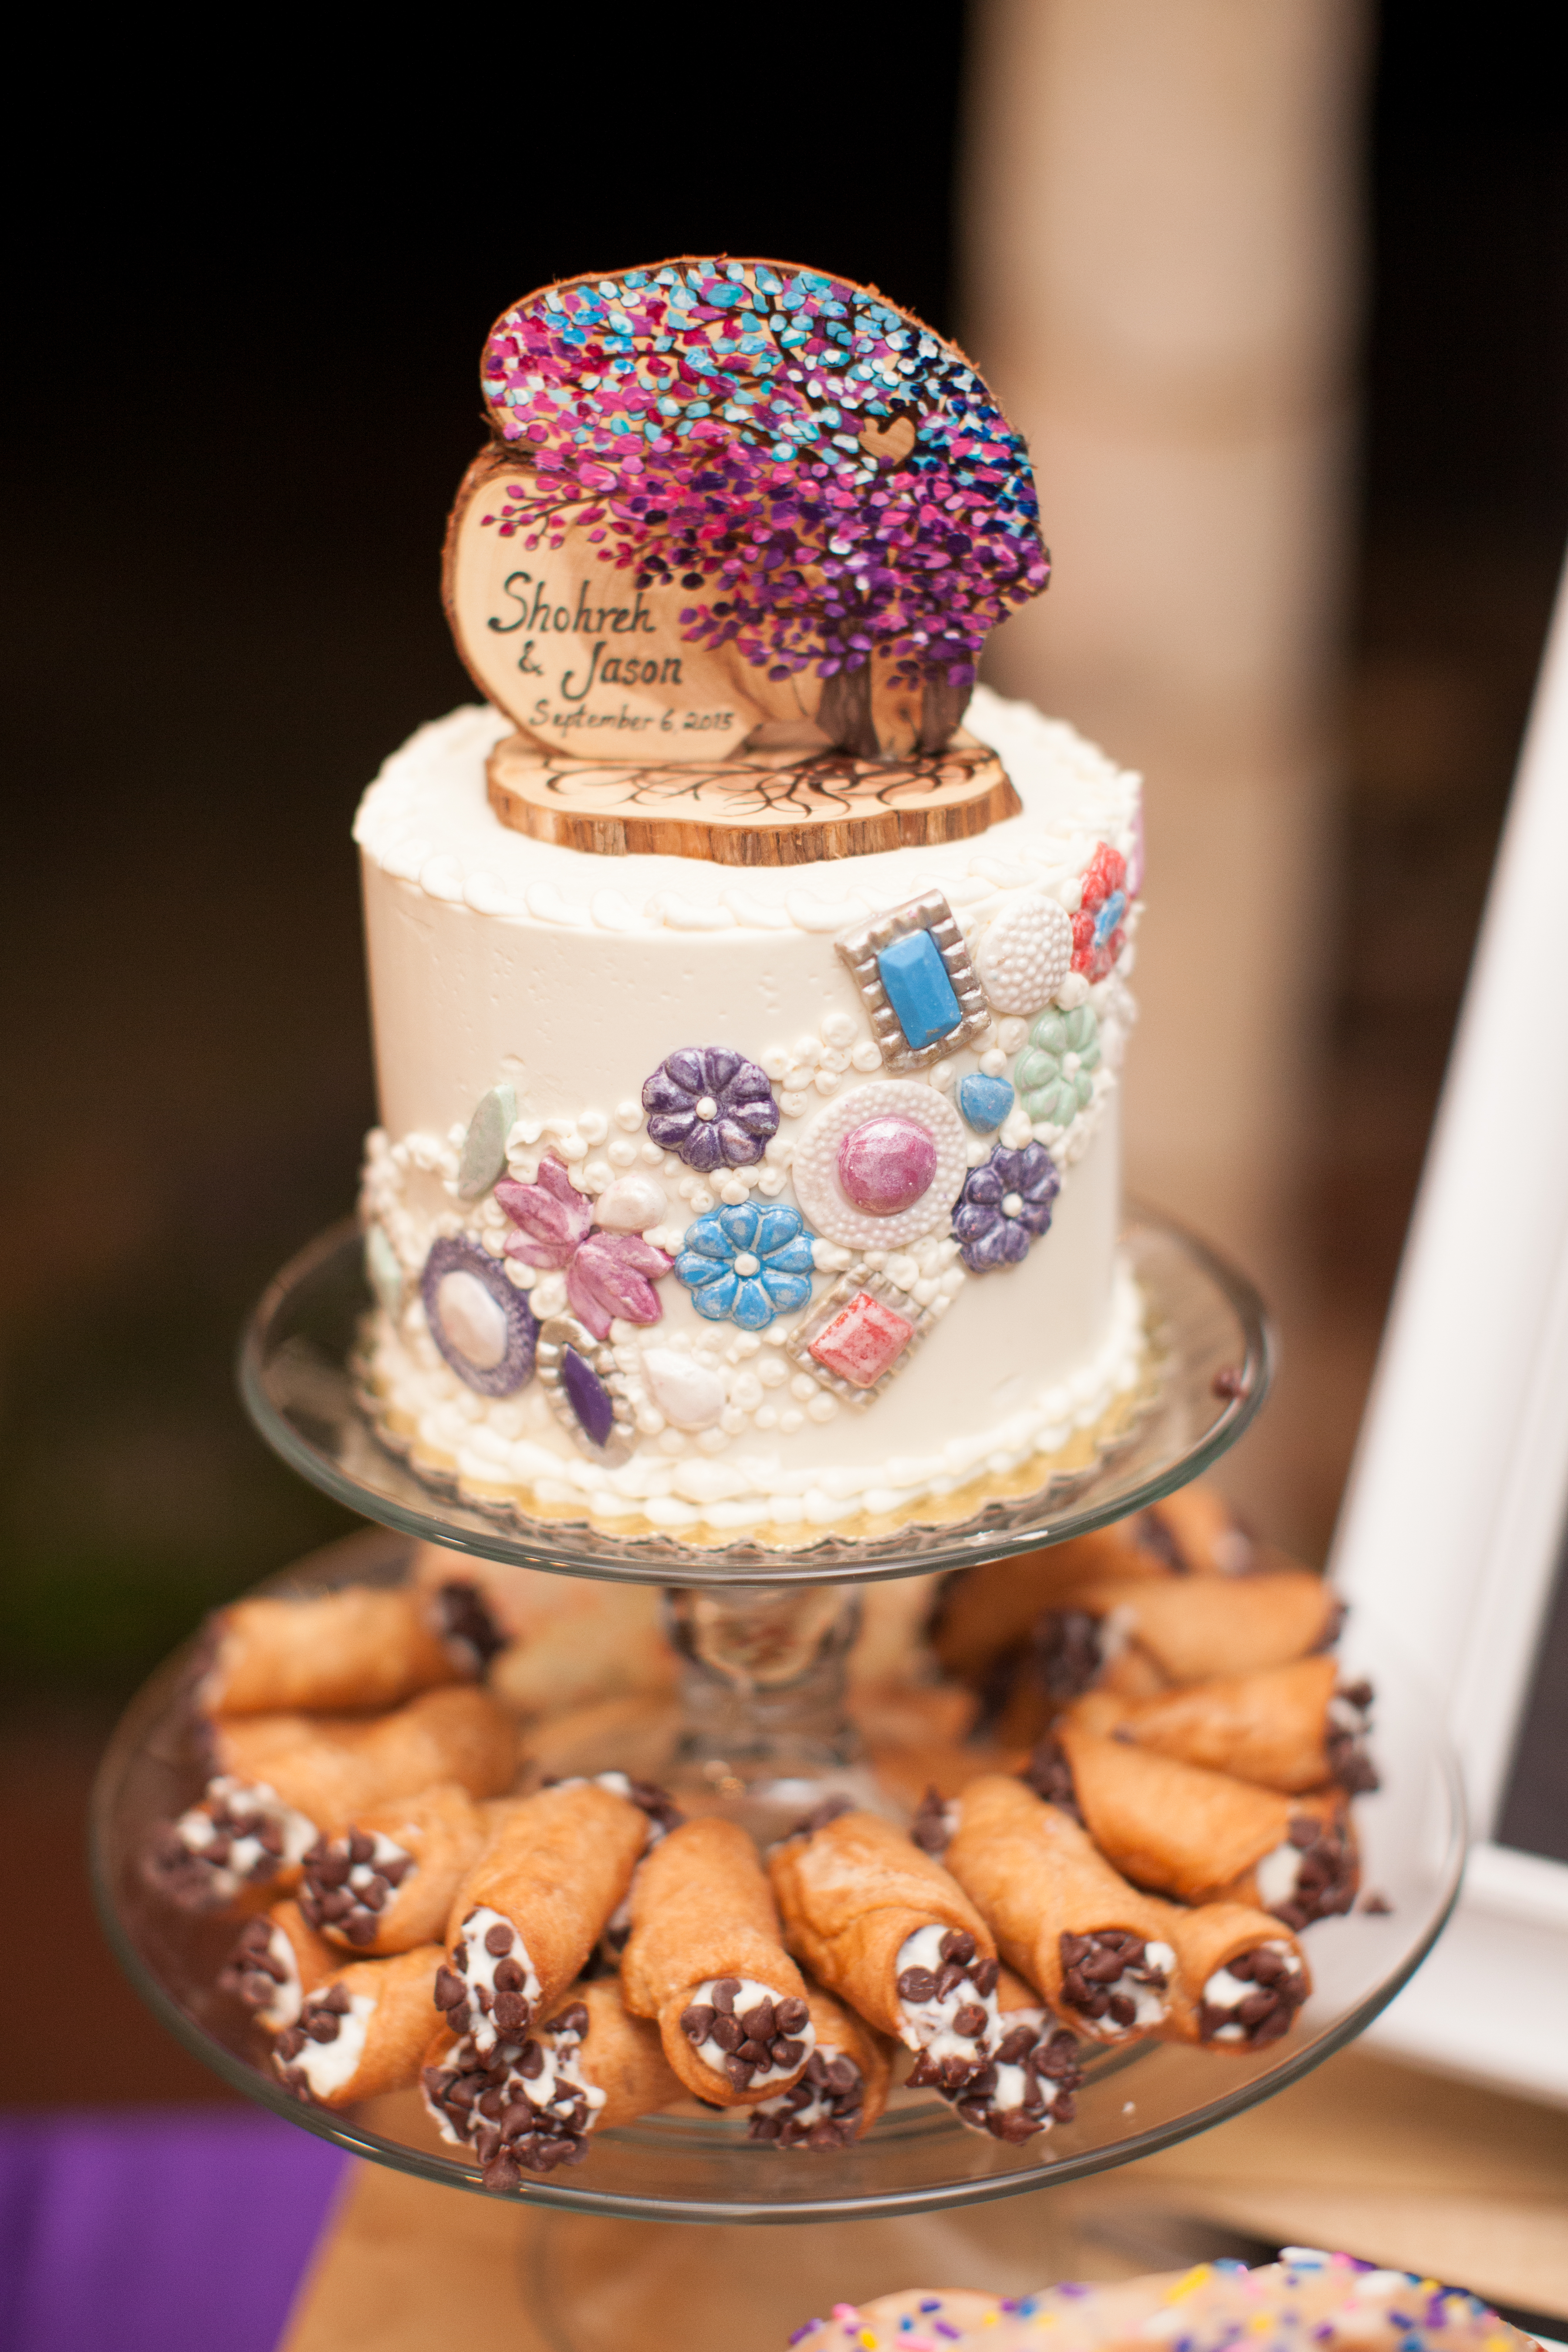 Shohreh and Jason's single-tier wedding cake with a wooden tree topper with a colorful painted tree and their names and wedding date